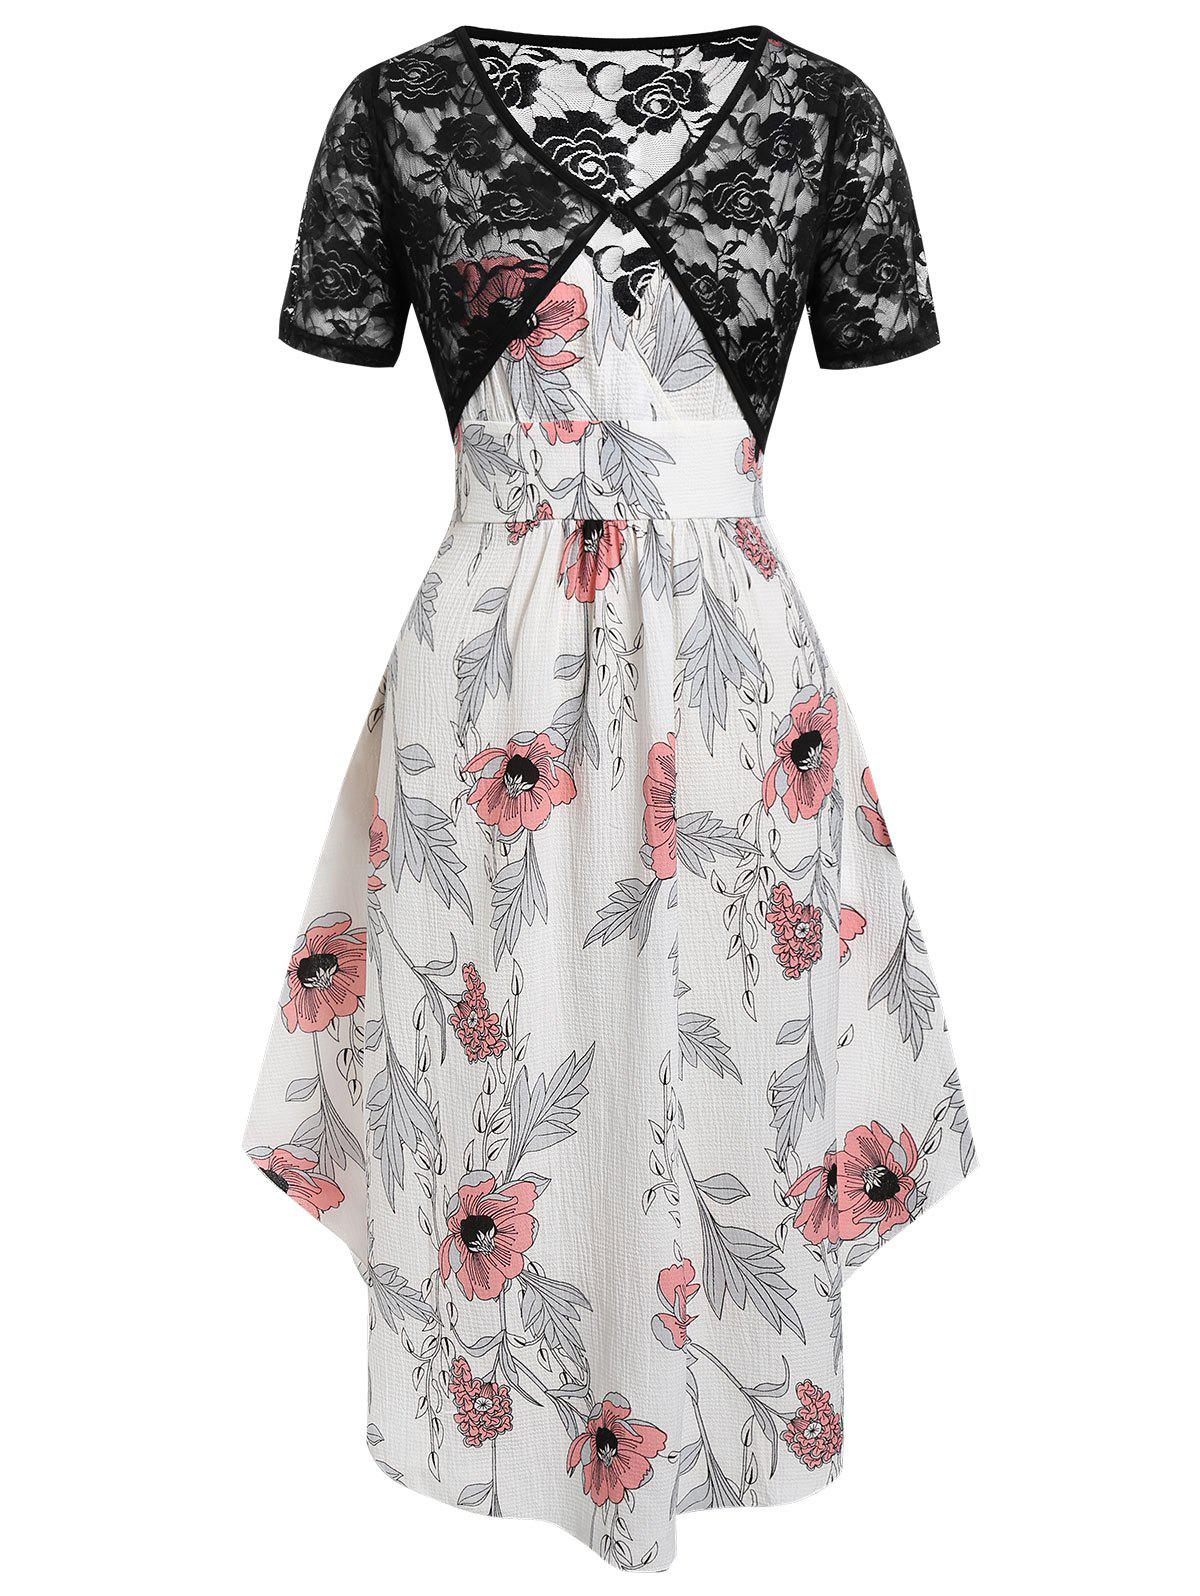 Chic Plus Size Floral Midi Dress With Lace Top Twinset